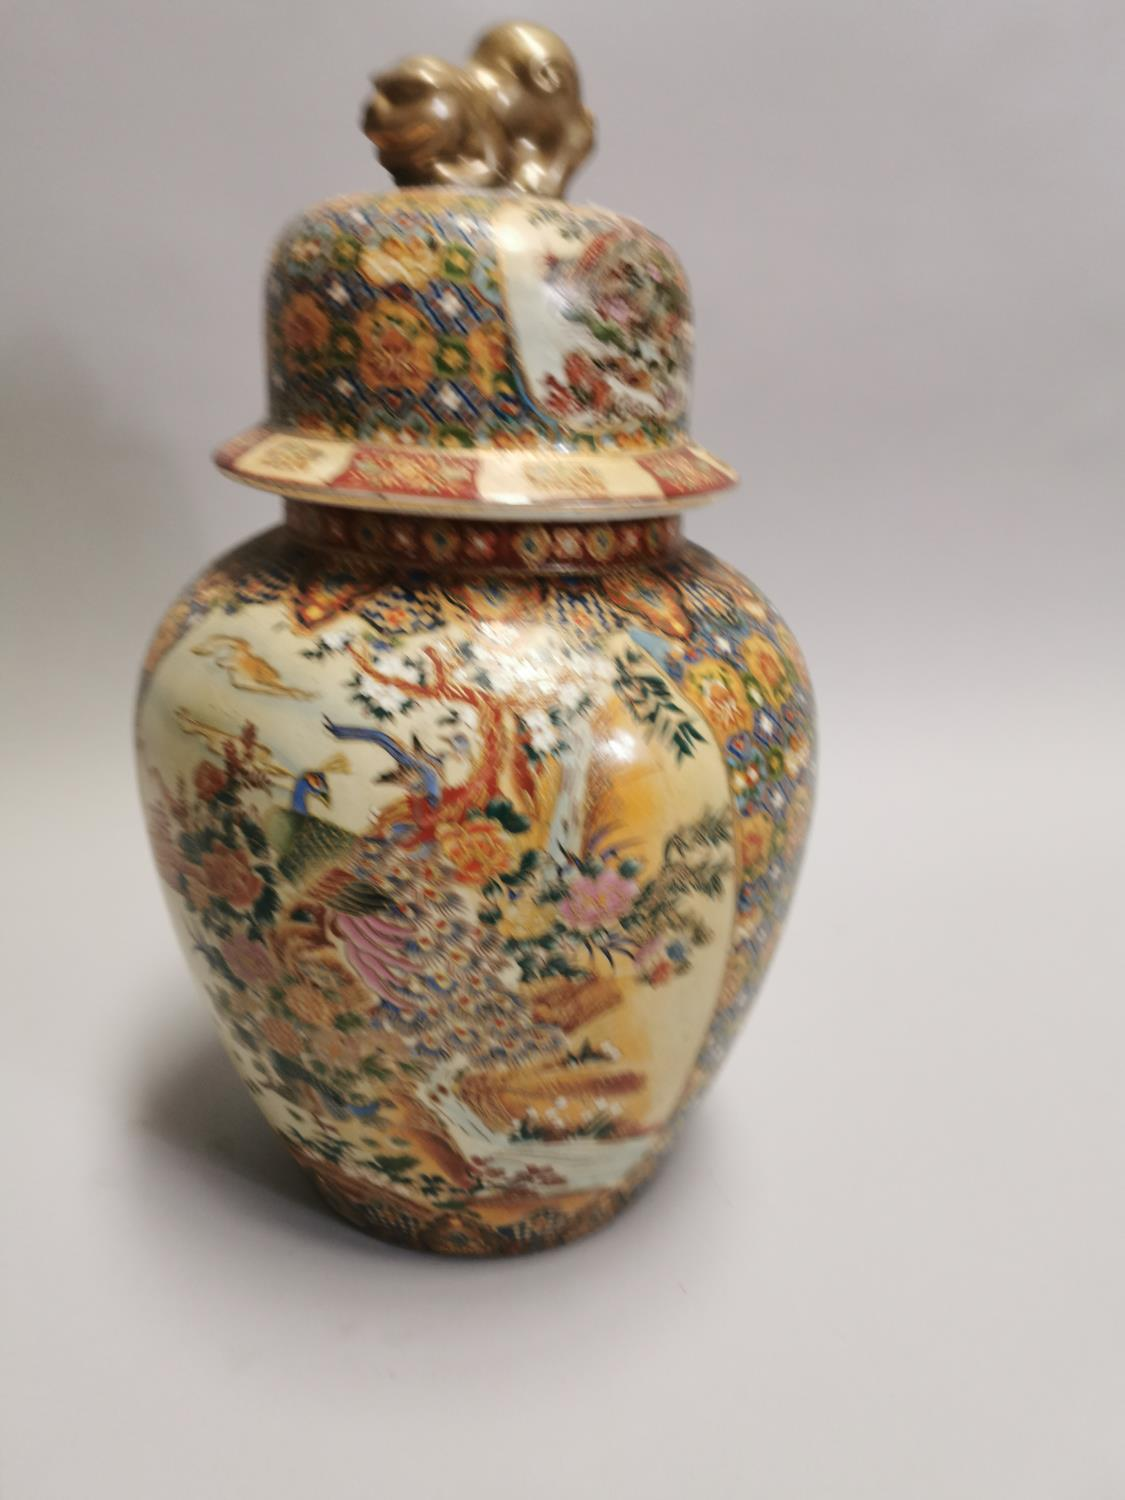 Ceramic lidded vase in the Cantonese style.